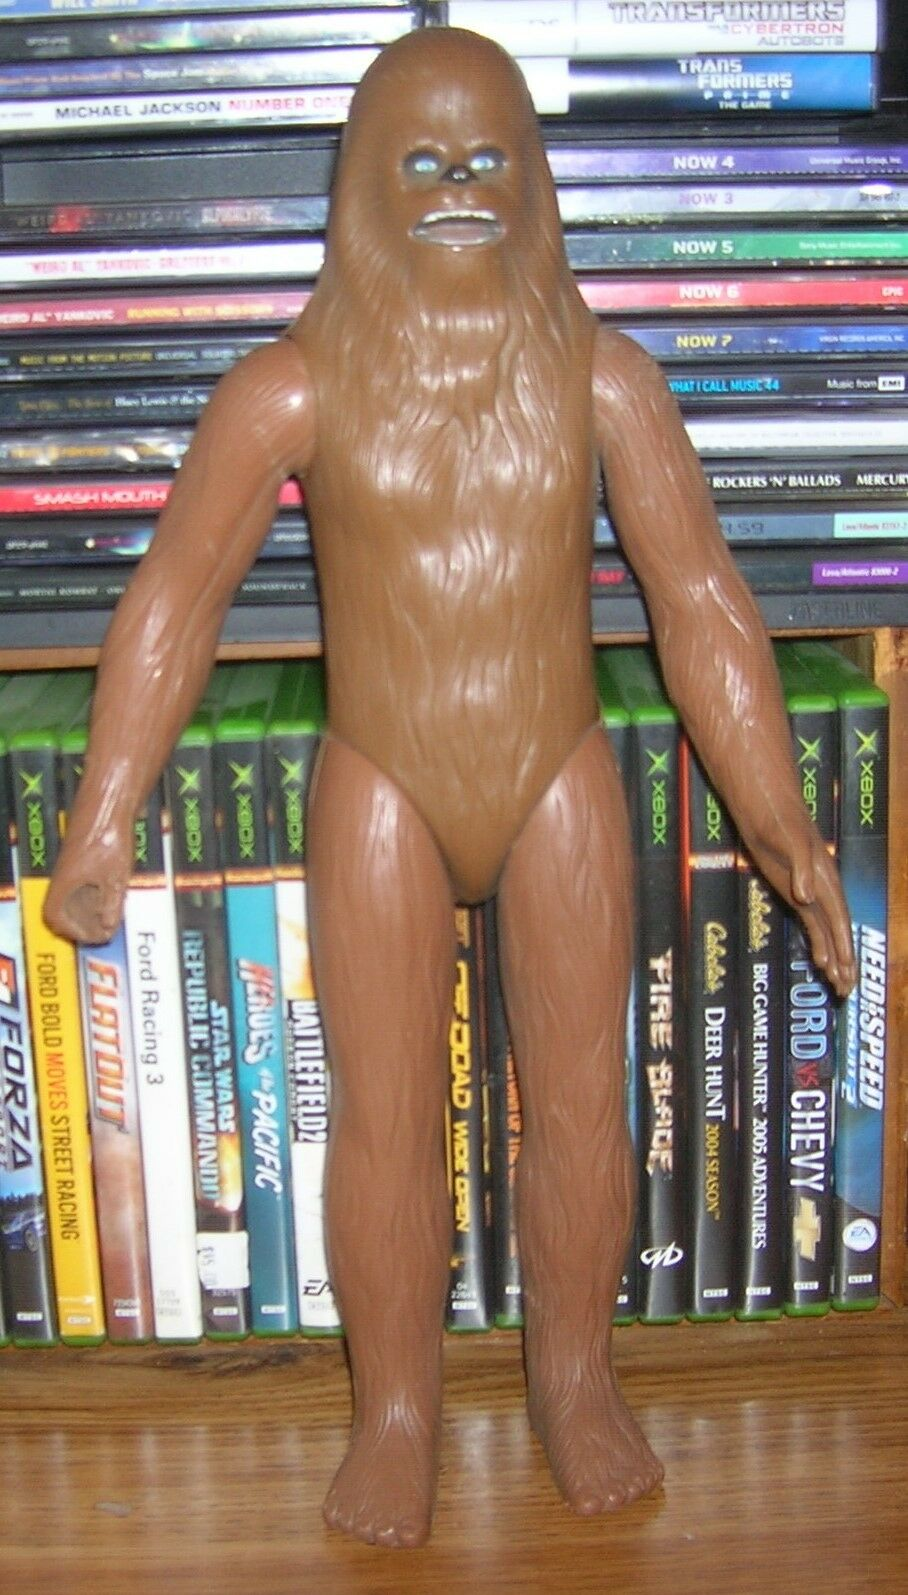 Star Wars General Mills Mills Mills 12 (14) Inch Vintage Chewbacca. FREE SHIPPING    20e927